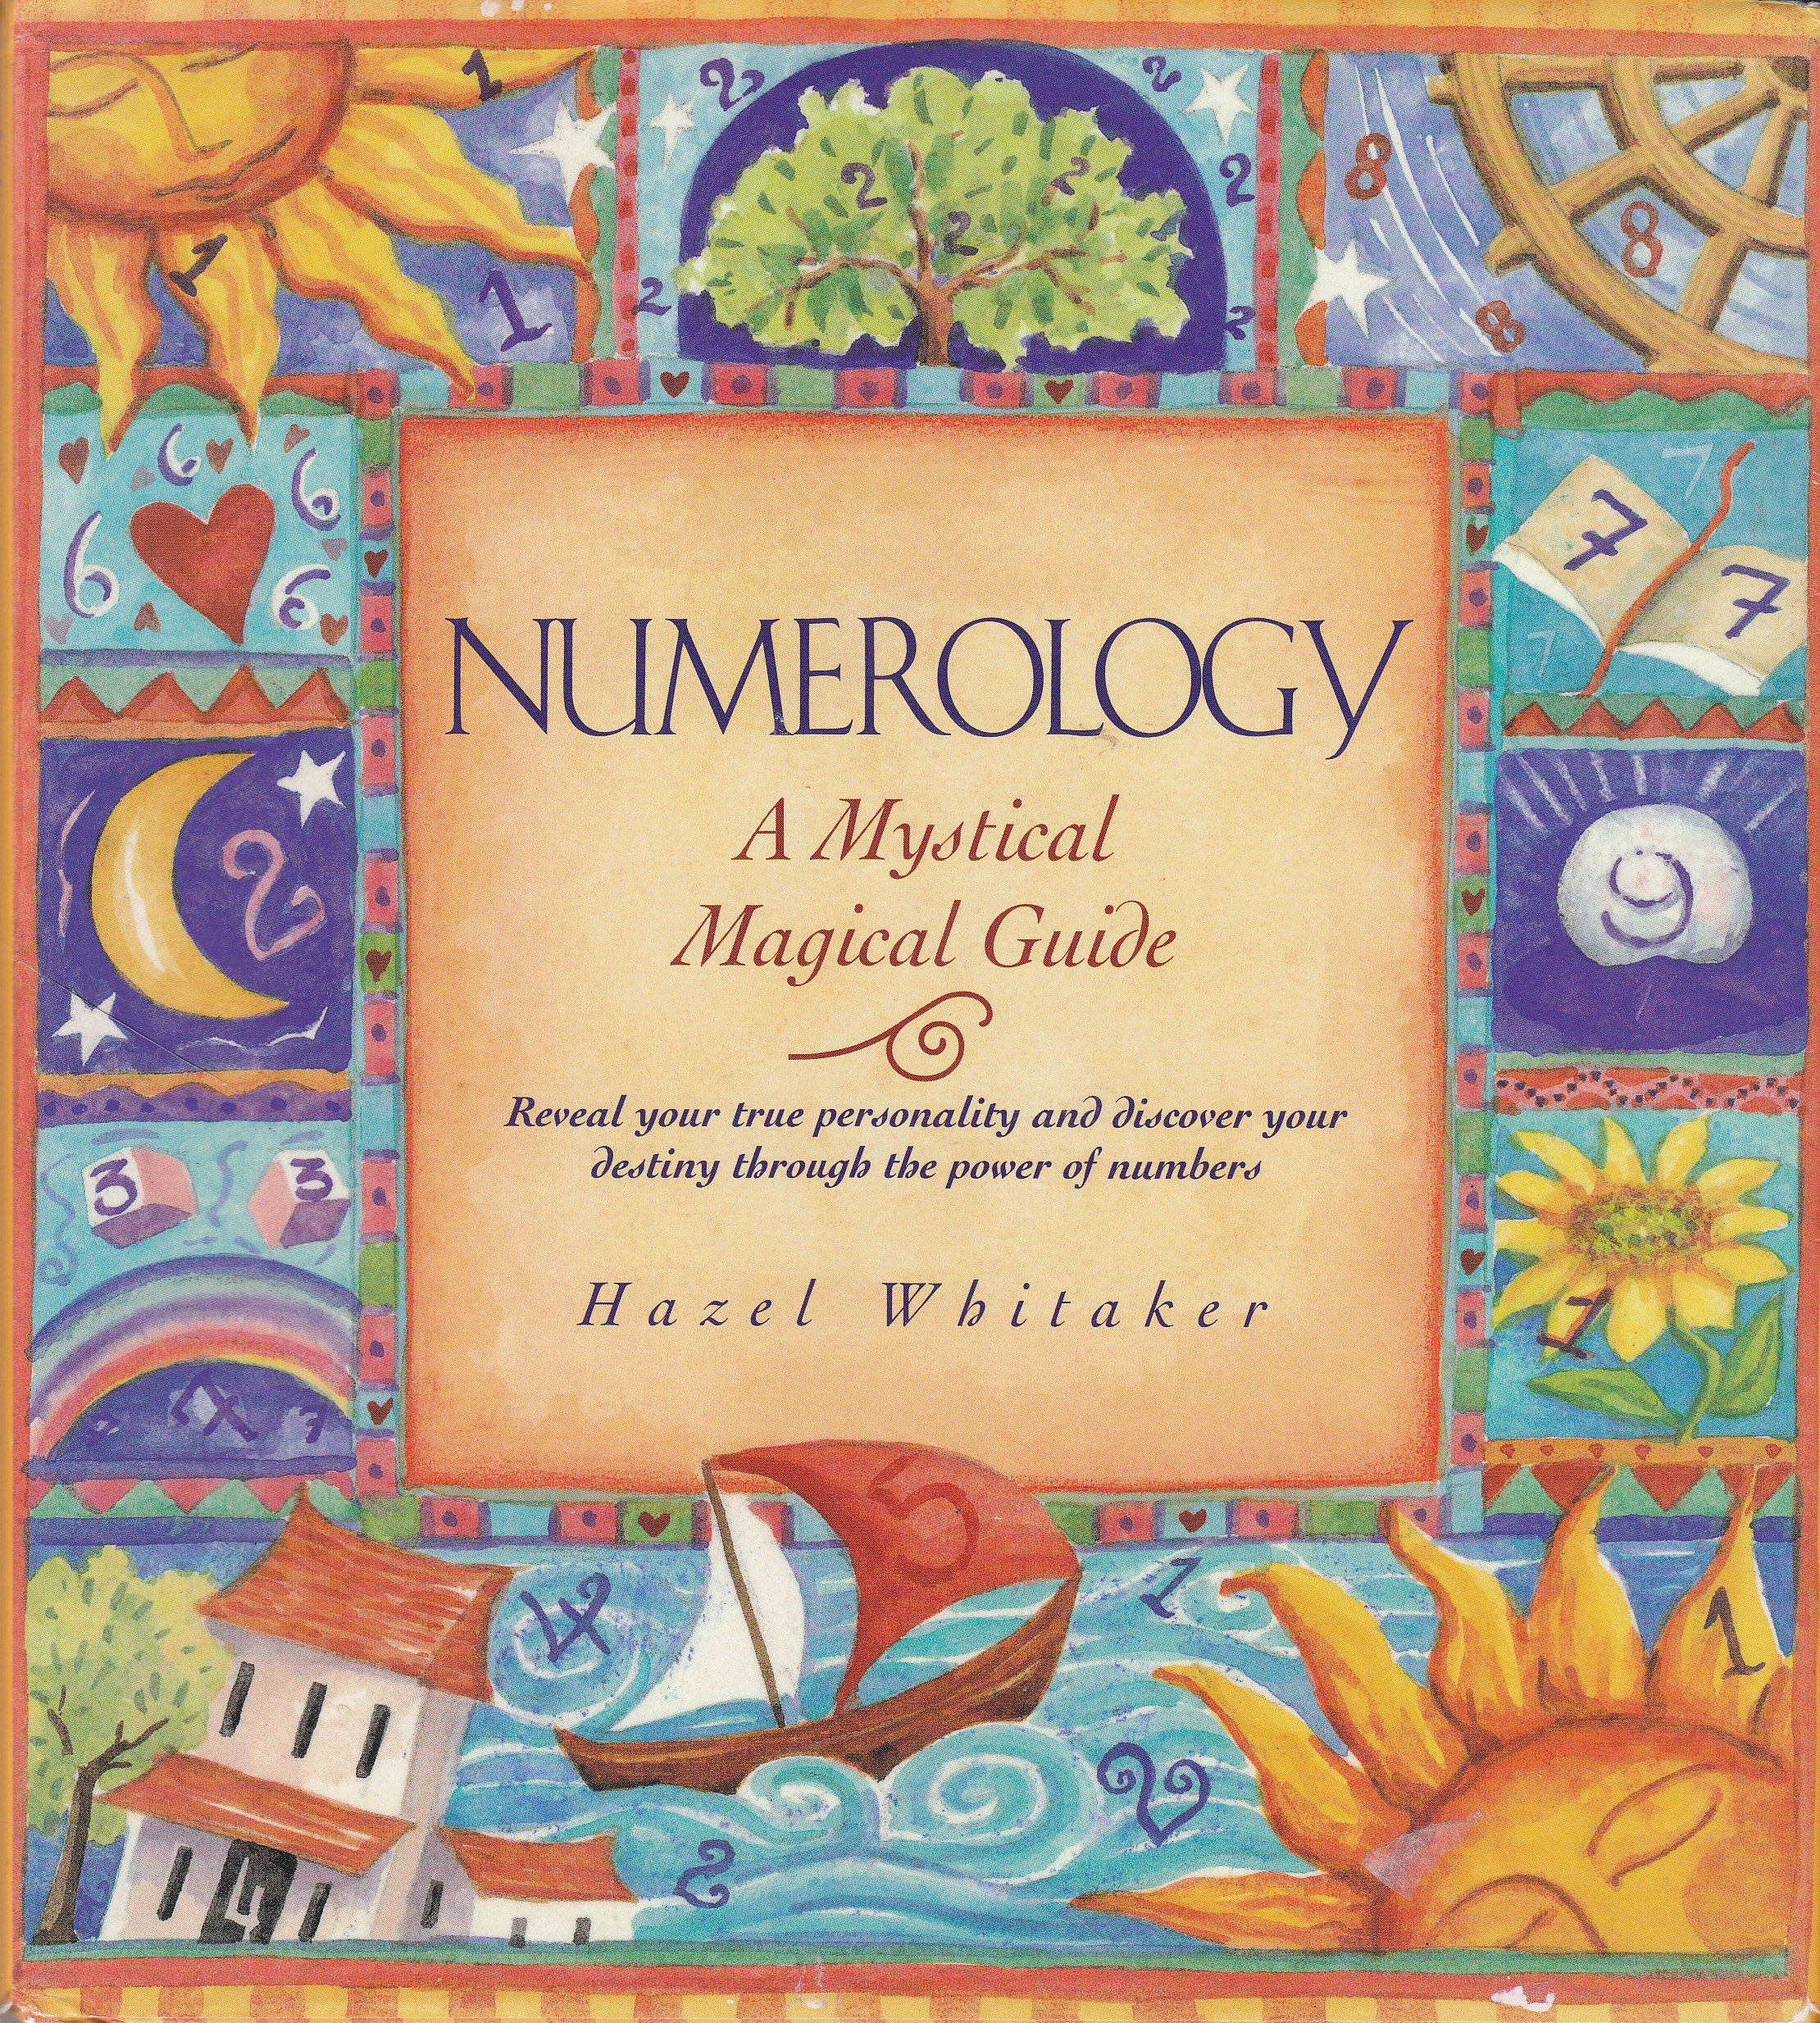 Numerology: A mystical magical guide : reveal your true personality and discover your destiny through the power of numbers, Whitaker, Hazel